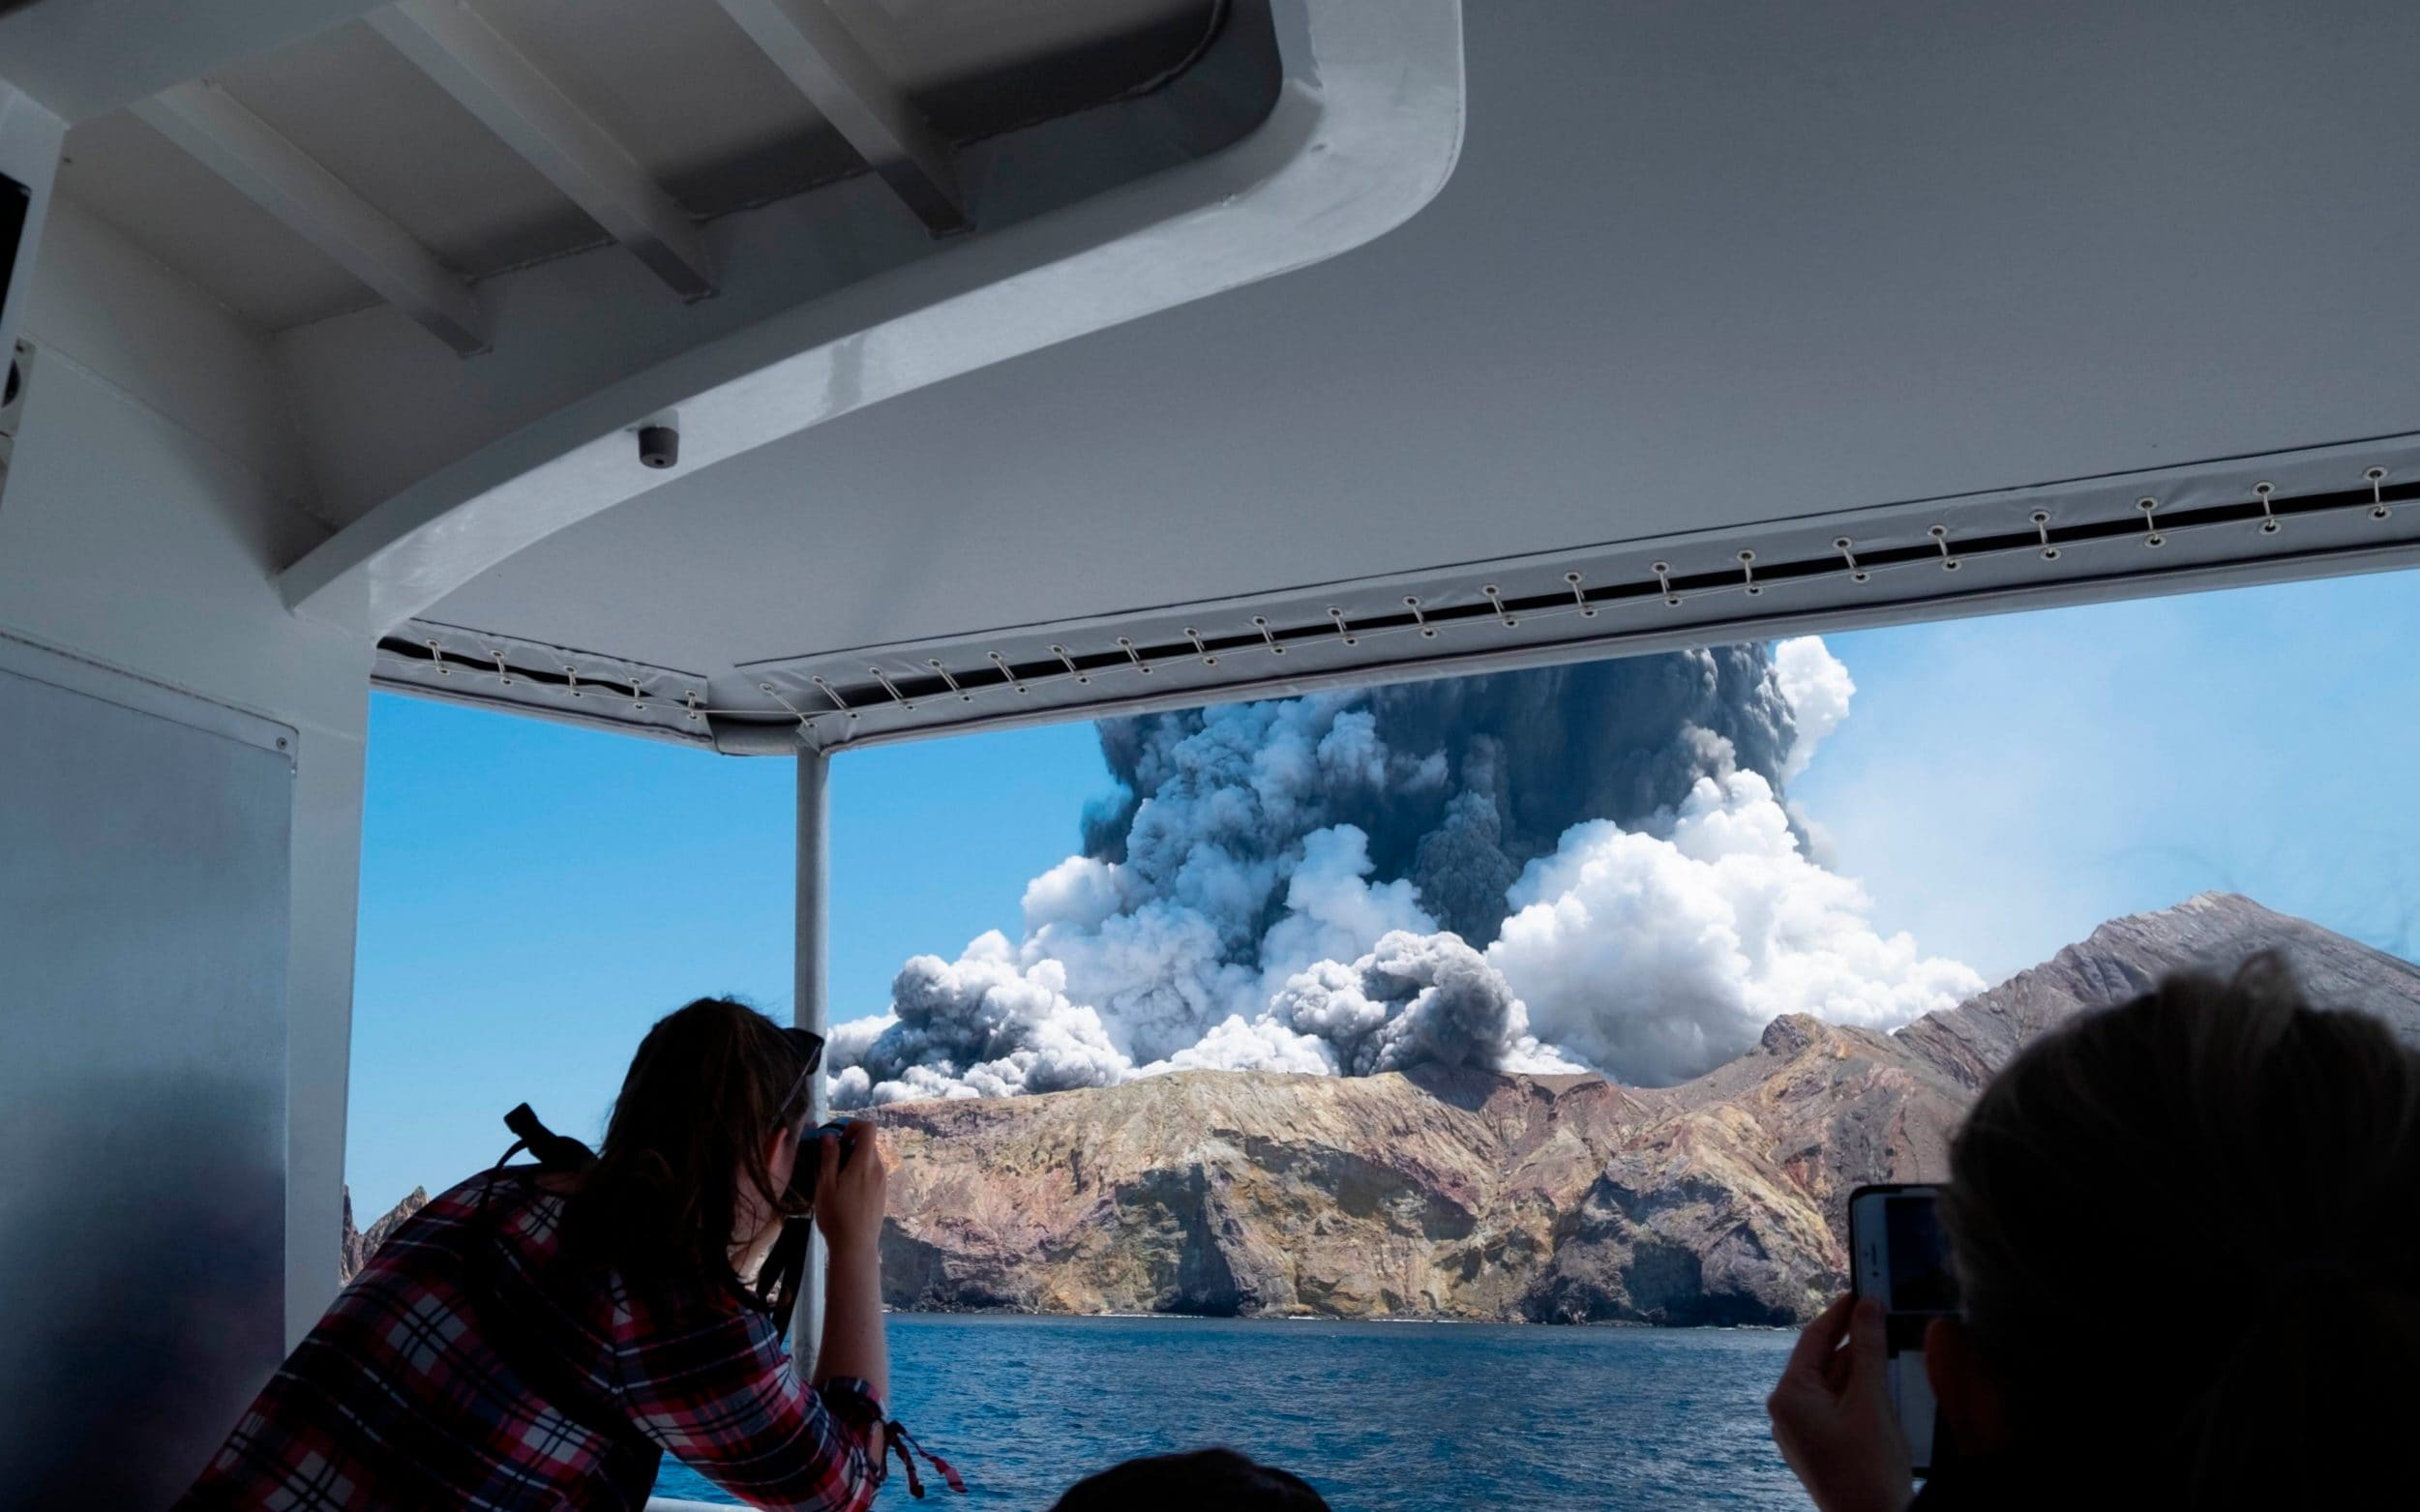 New Zealand volcano tragedy:Death toll rises to 19 as another victim dies in hospital